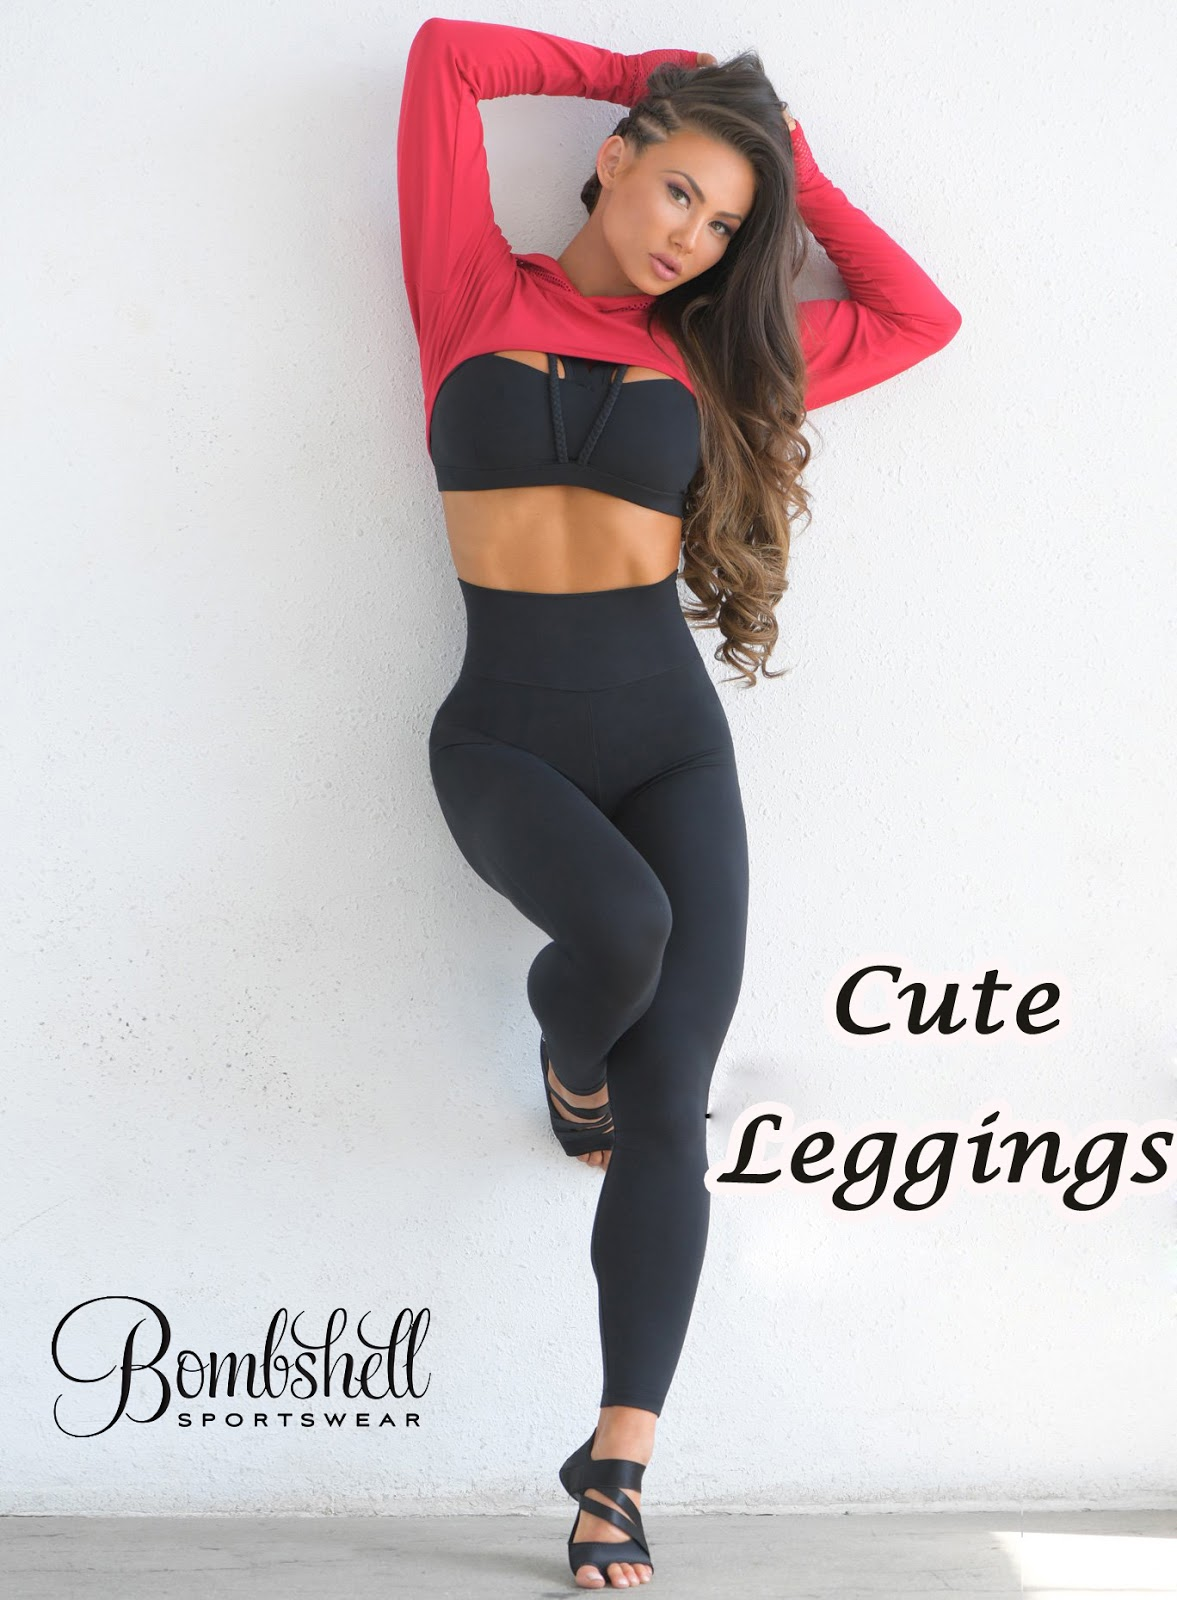 4f24b0bbf3 Look cute and fashionable with the Cute Leggings designed by Bombshell  Sportswear. These leggings are the perfect combination of fashion and  fitness.